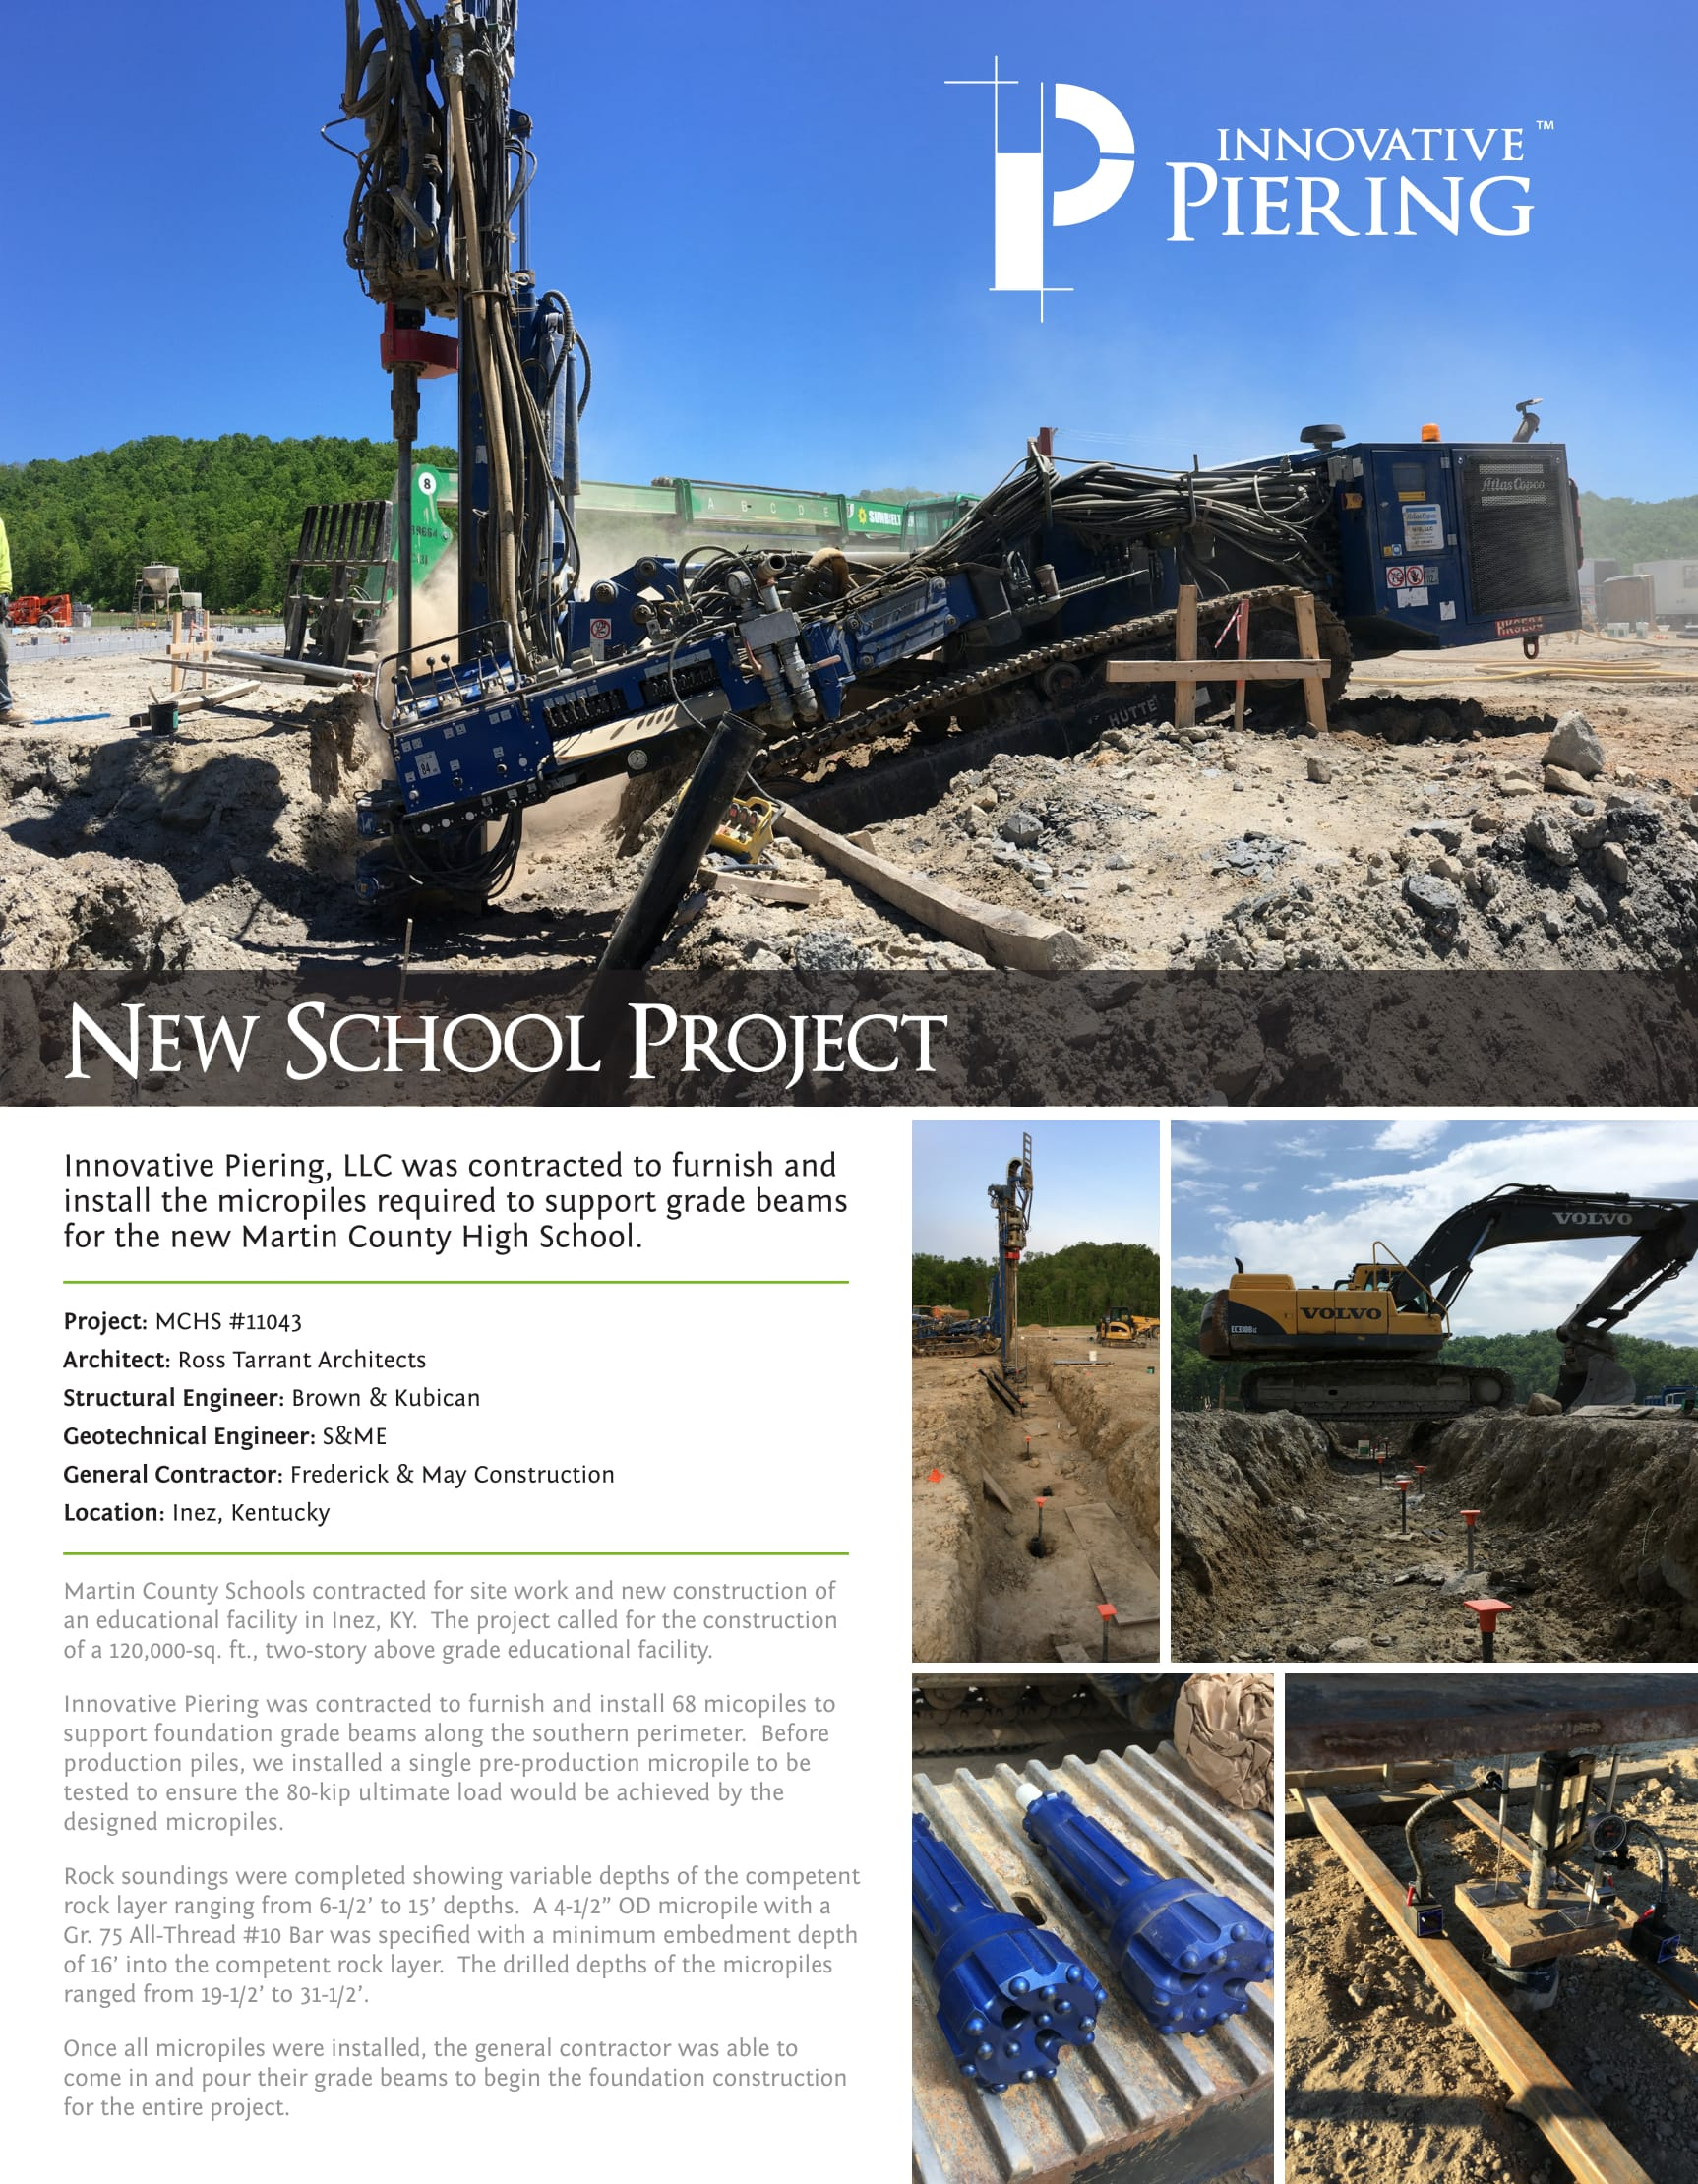 Martin County High School Foundation Project - Inez, Kentucky - Innovative Piering